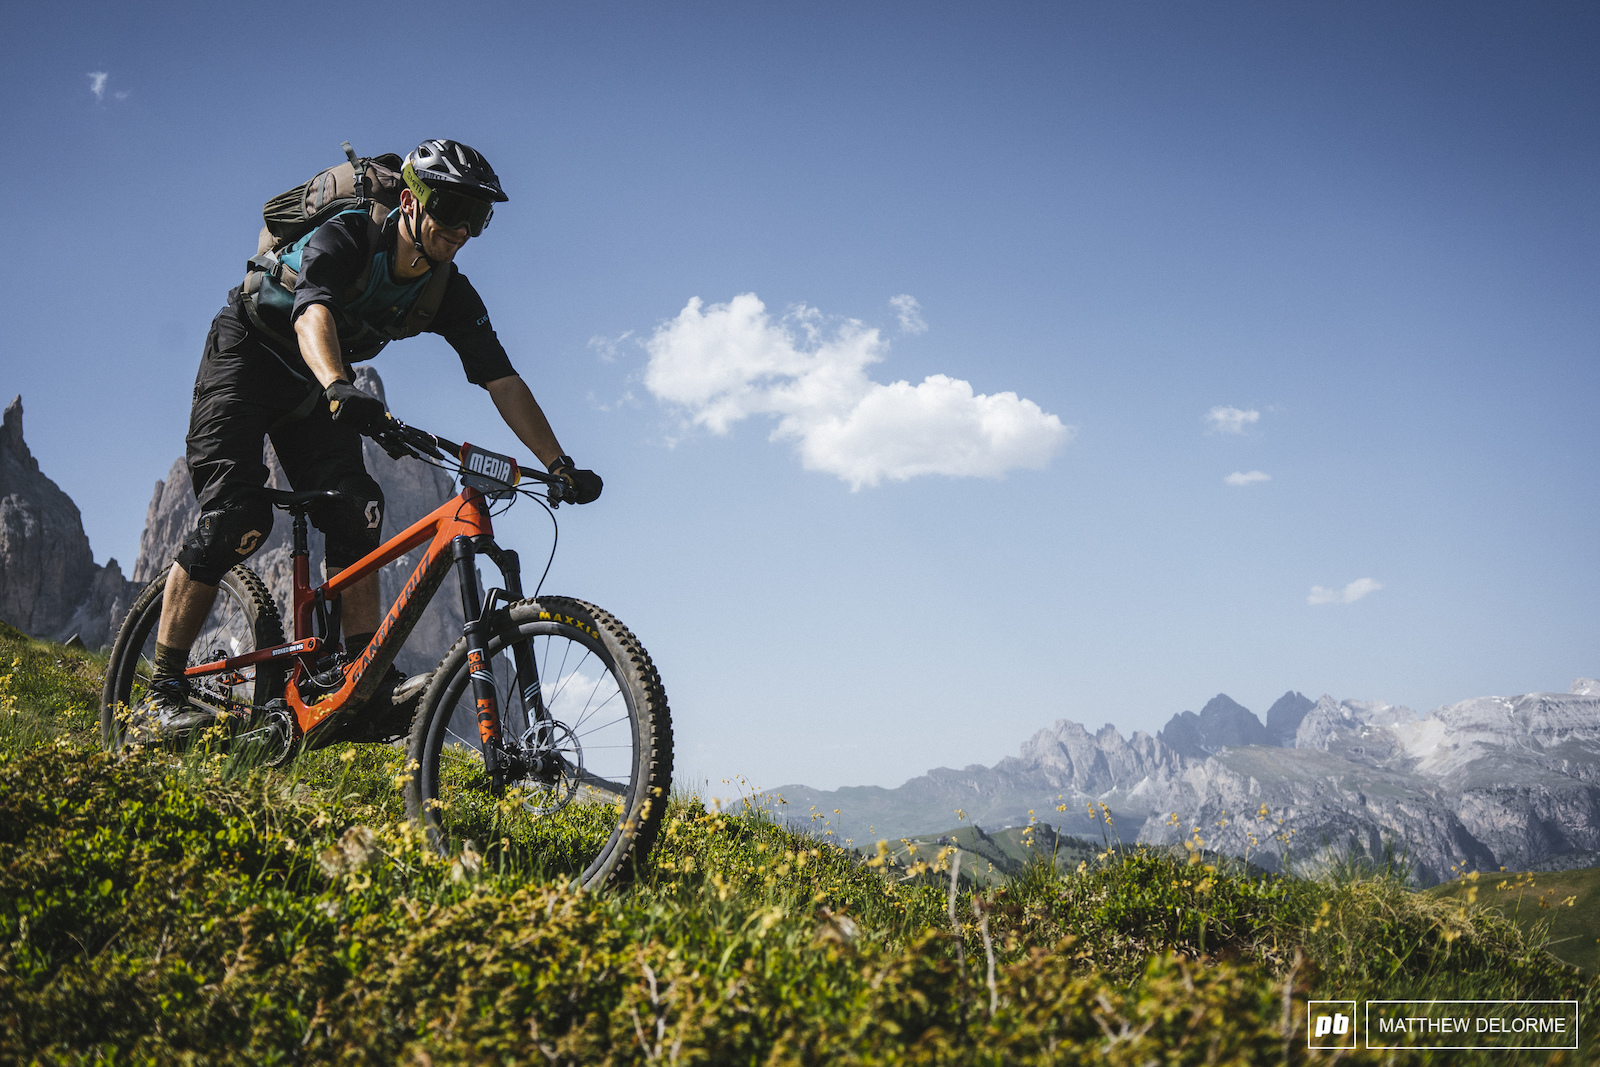 Chris Seager dives into stage five with the jagged teeth of the Dolomites looming in the back ground.